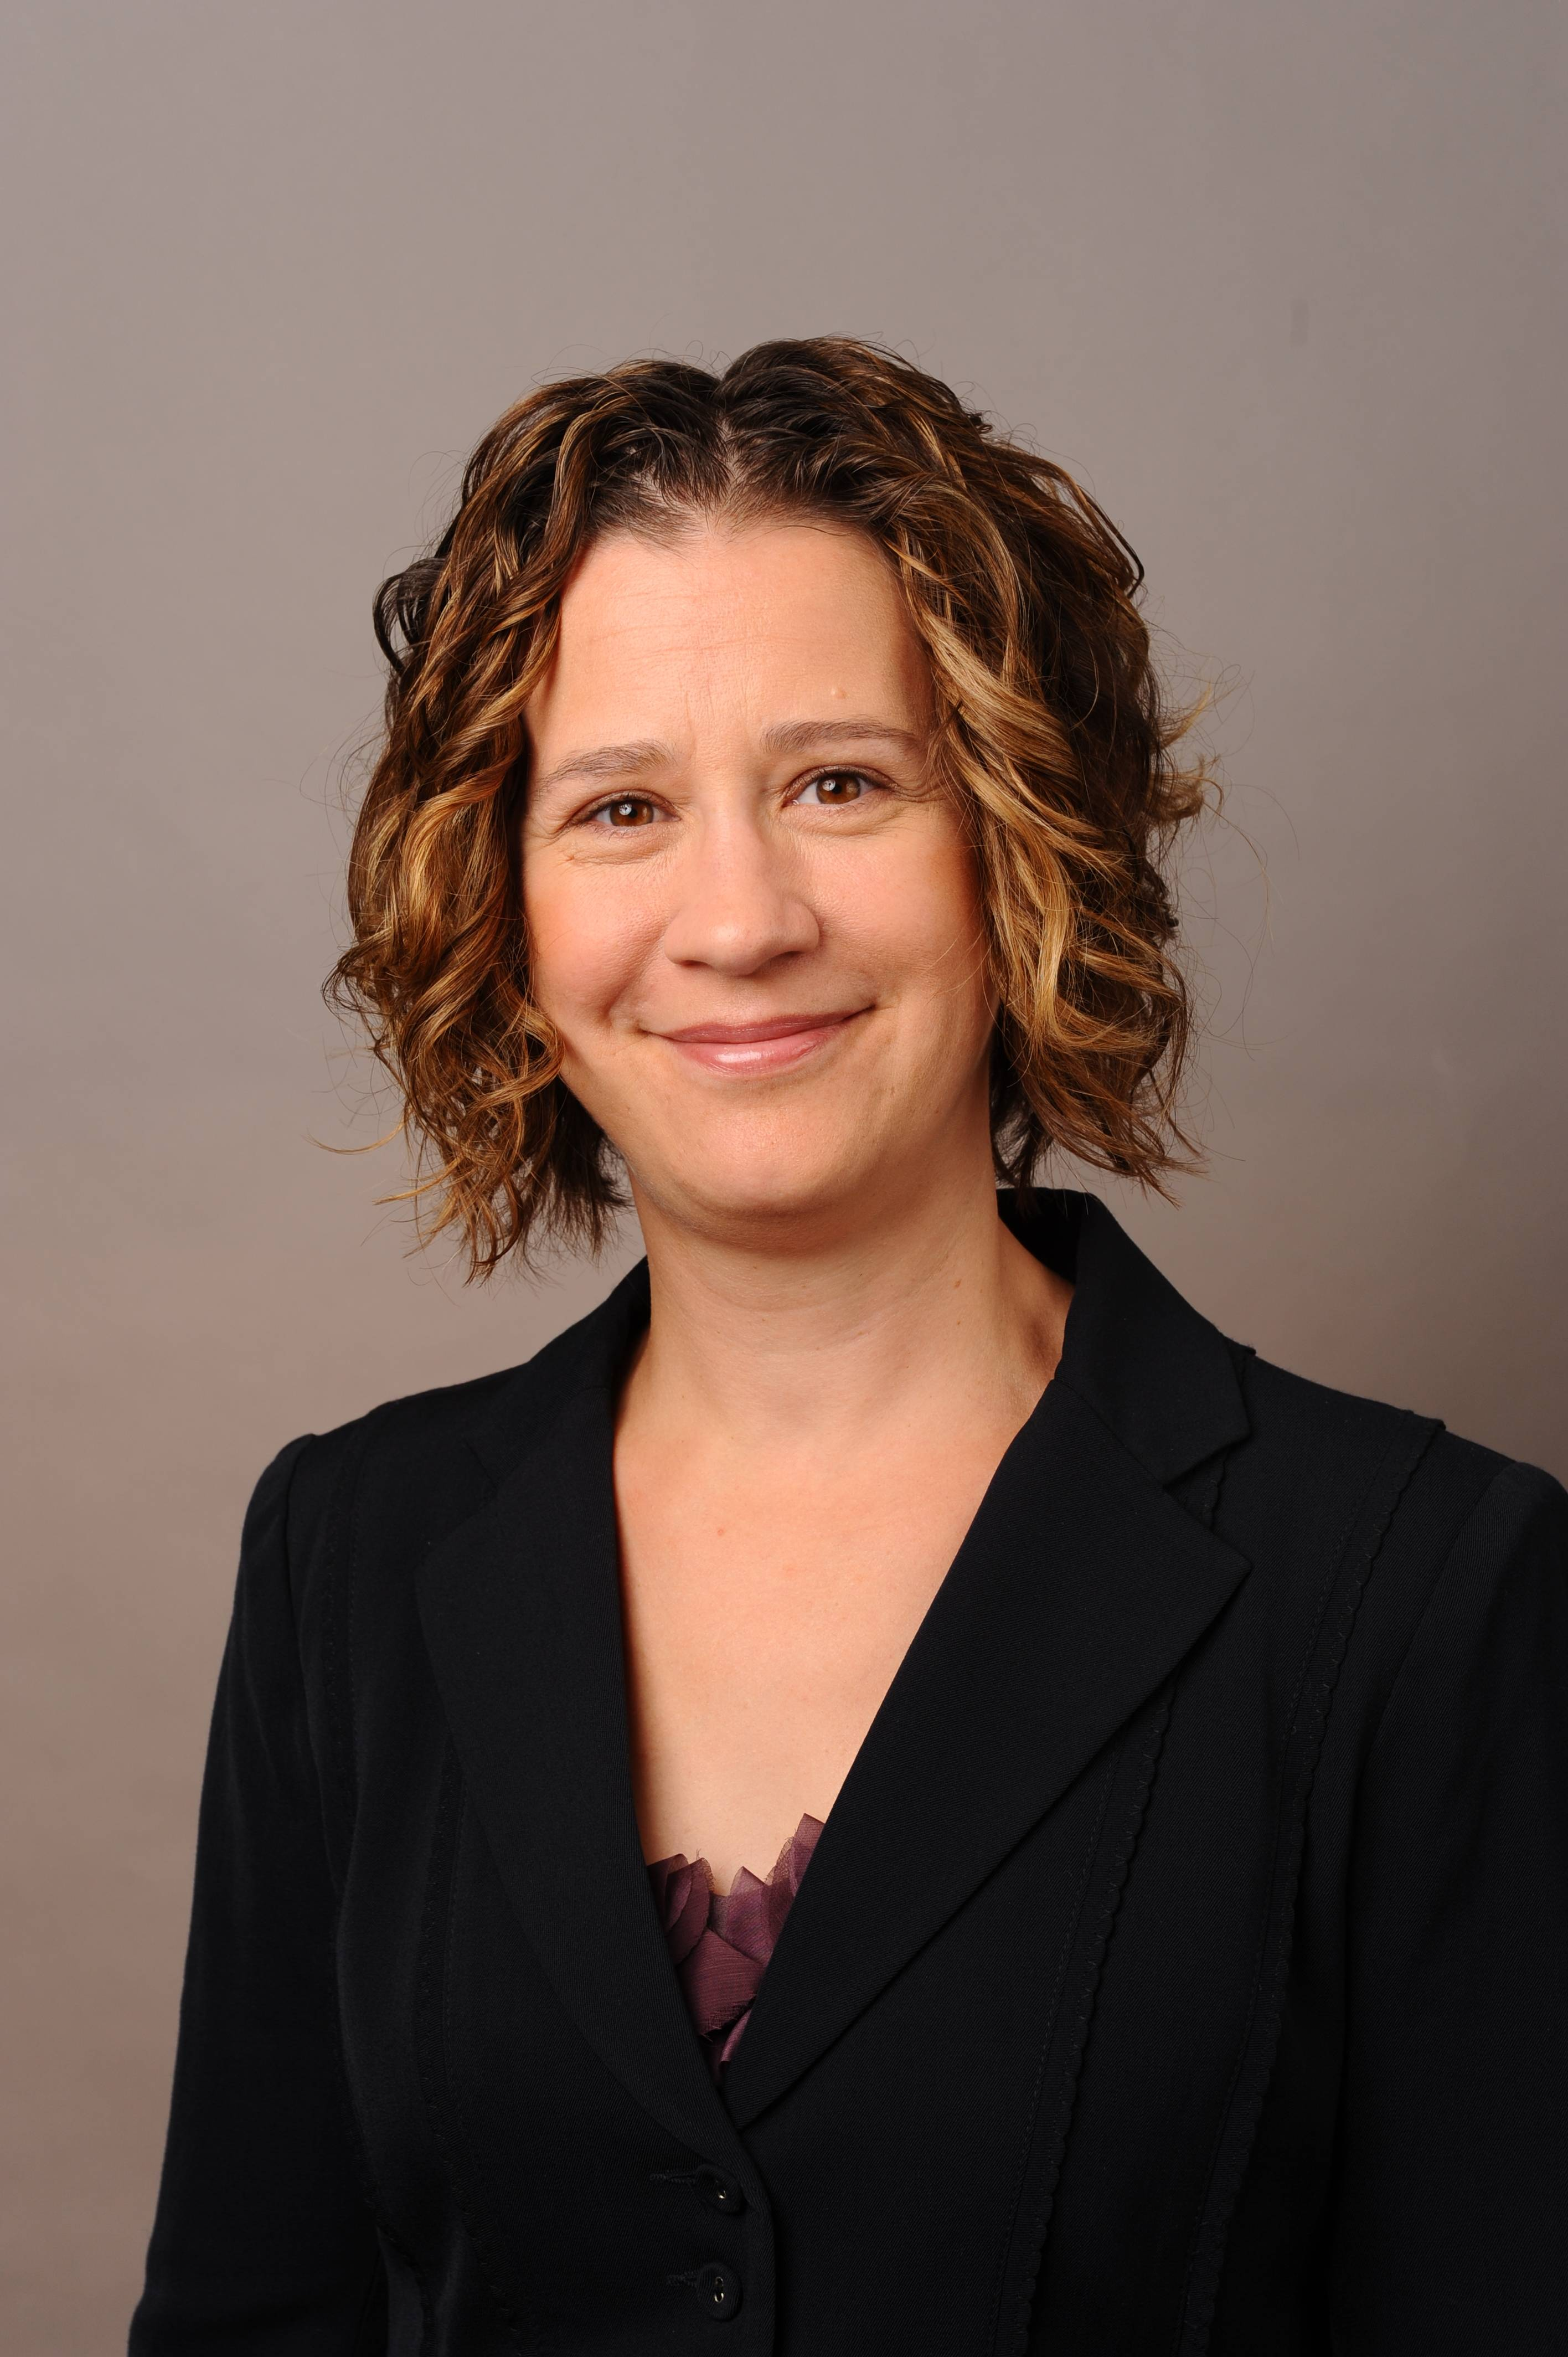 Denise A. Lazar, a partner in Barnes & Thornburg LLP's Chicago office, is joining the International Women's Forum.